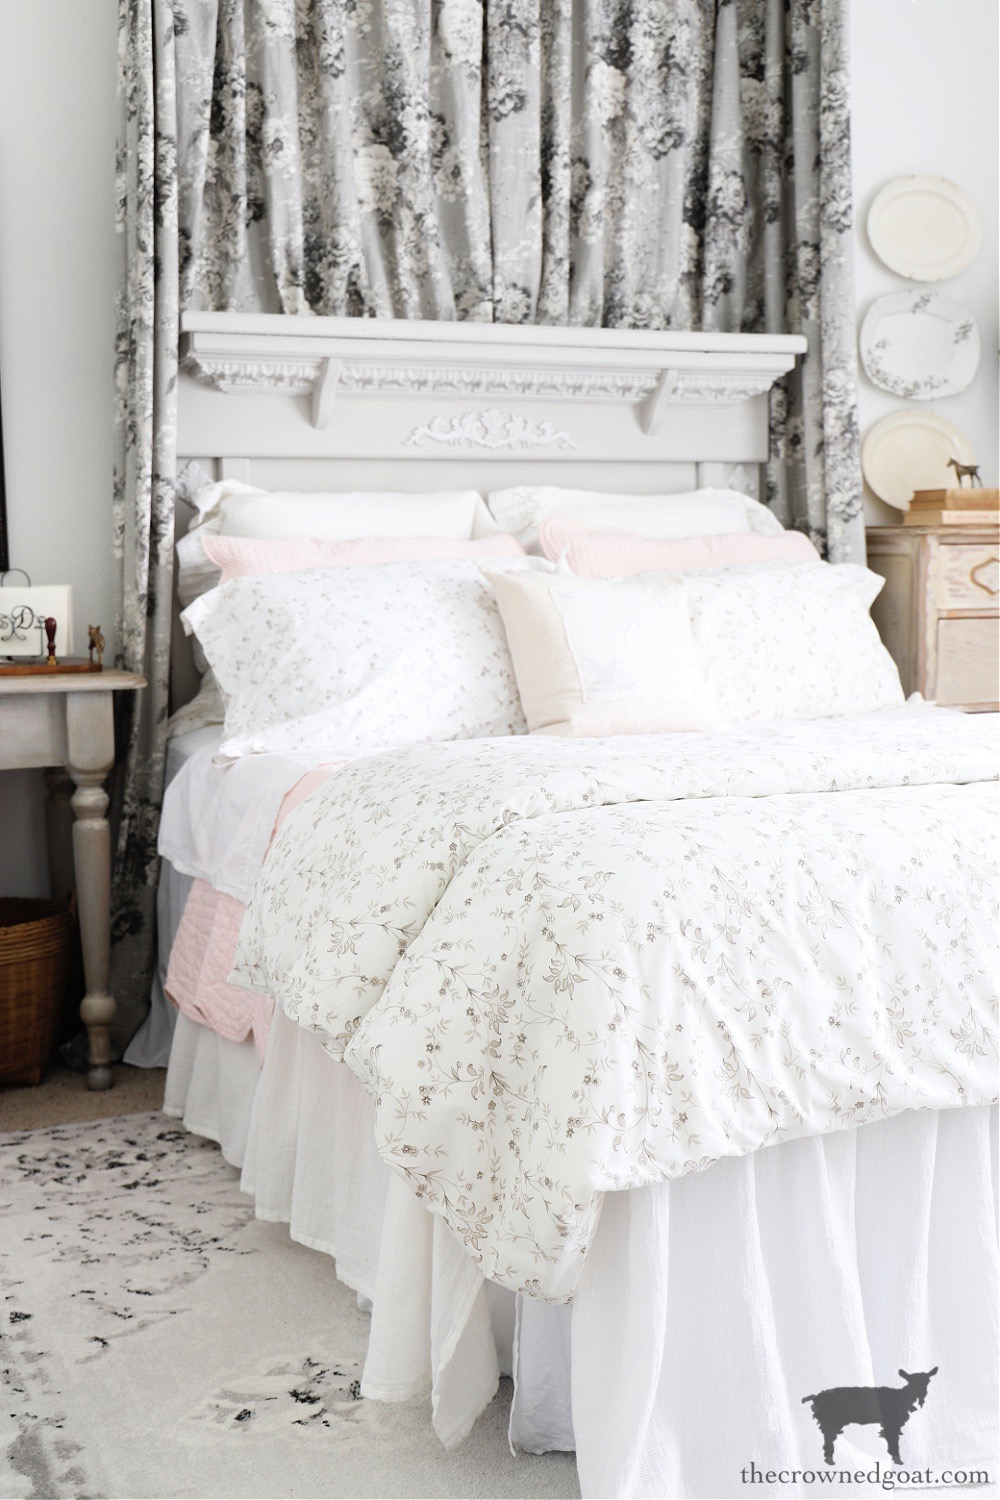 Journeys End Home Tour-Cottage Guest Bedroom-The Crowned Goat